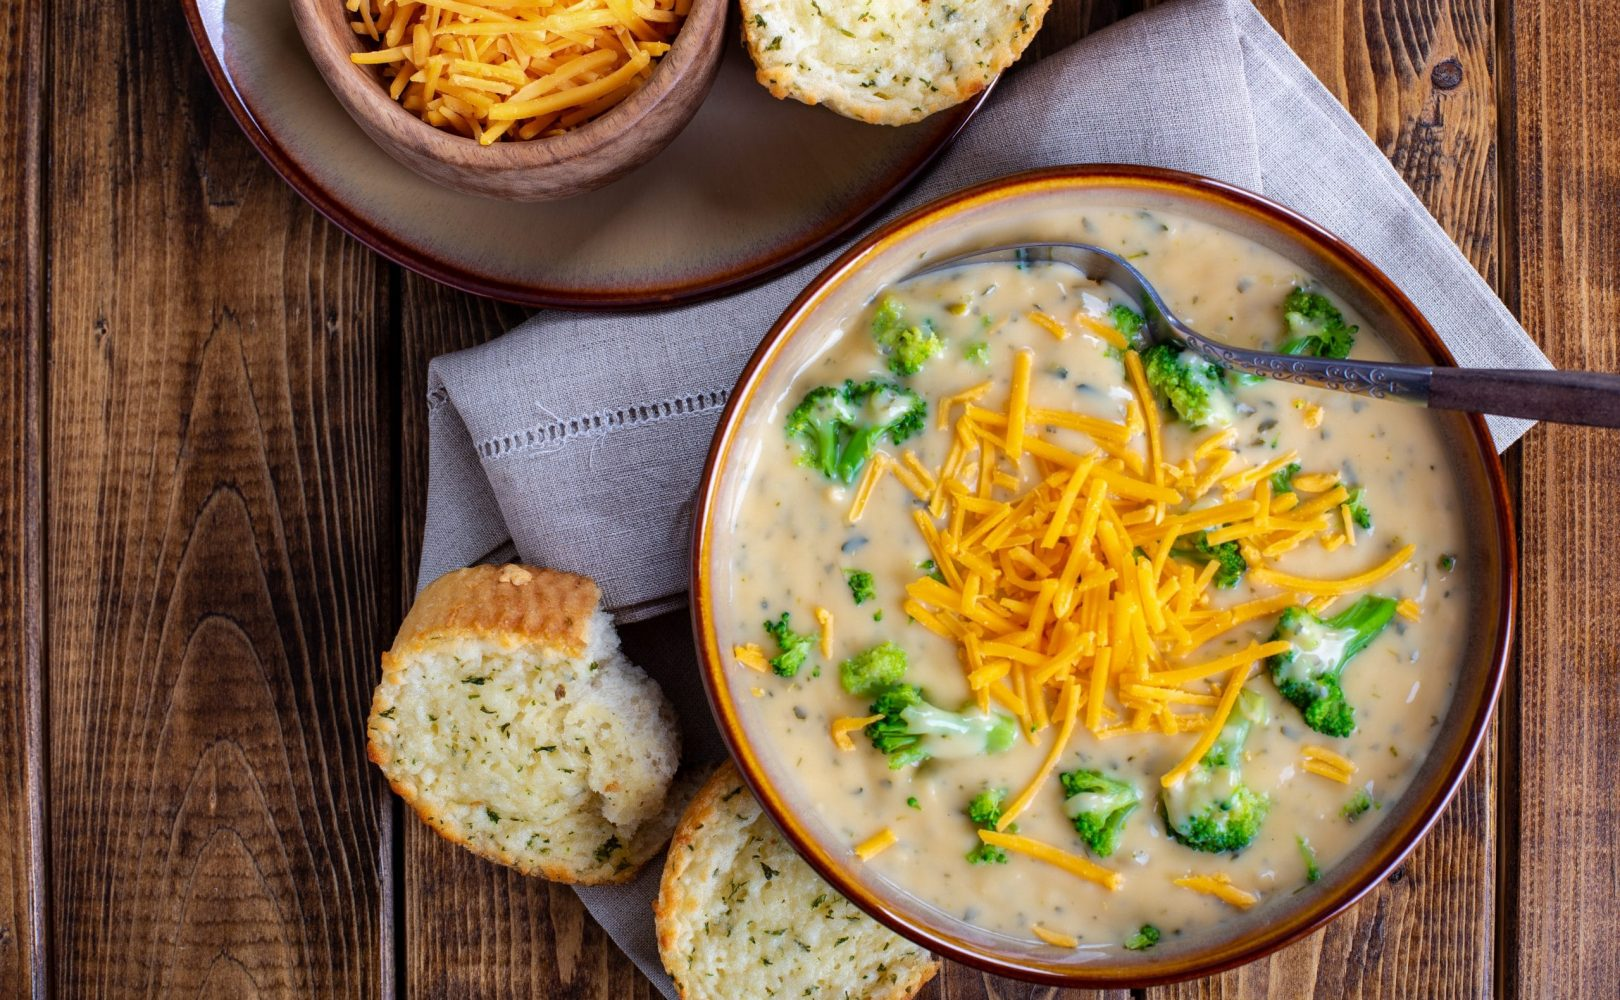 Overhead view of a bowl of creamy broccoli cheddar soup with toasted cheese bread on a wooden table